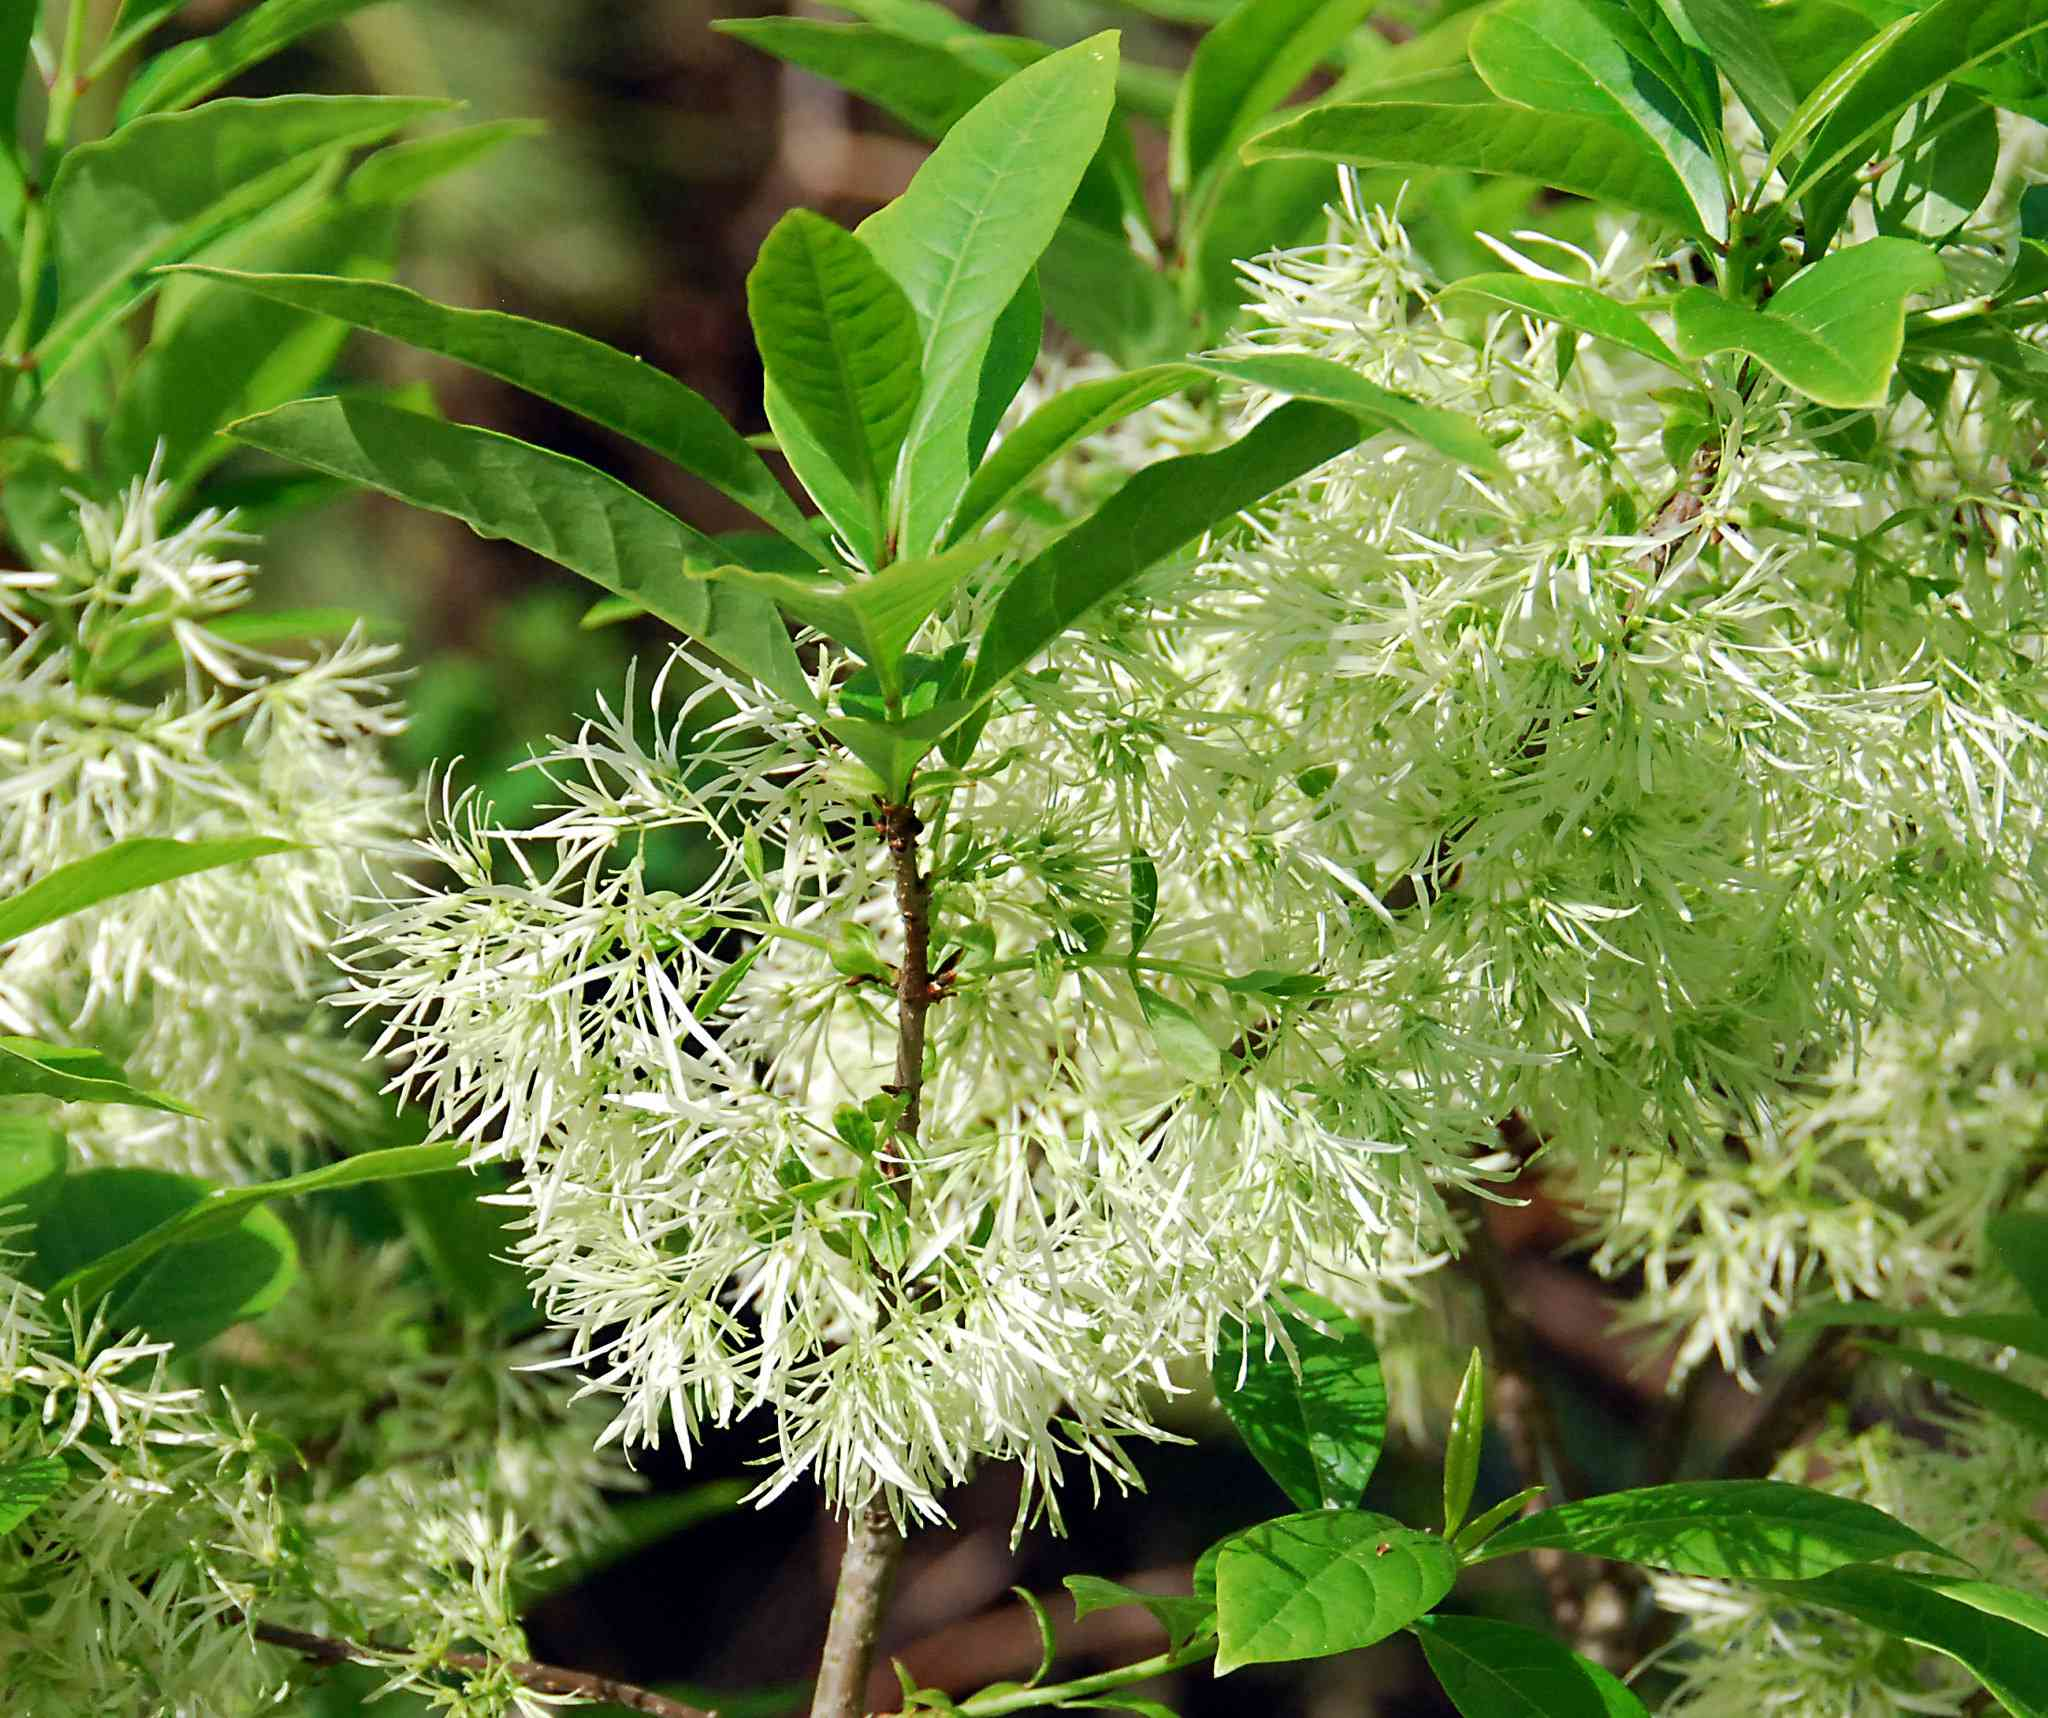 Close up of green leaves and blossoms on a Fringe tree.